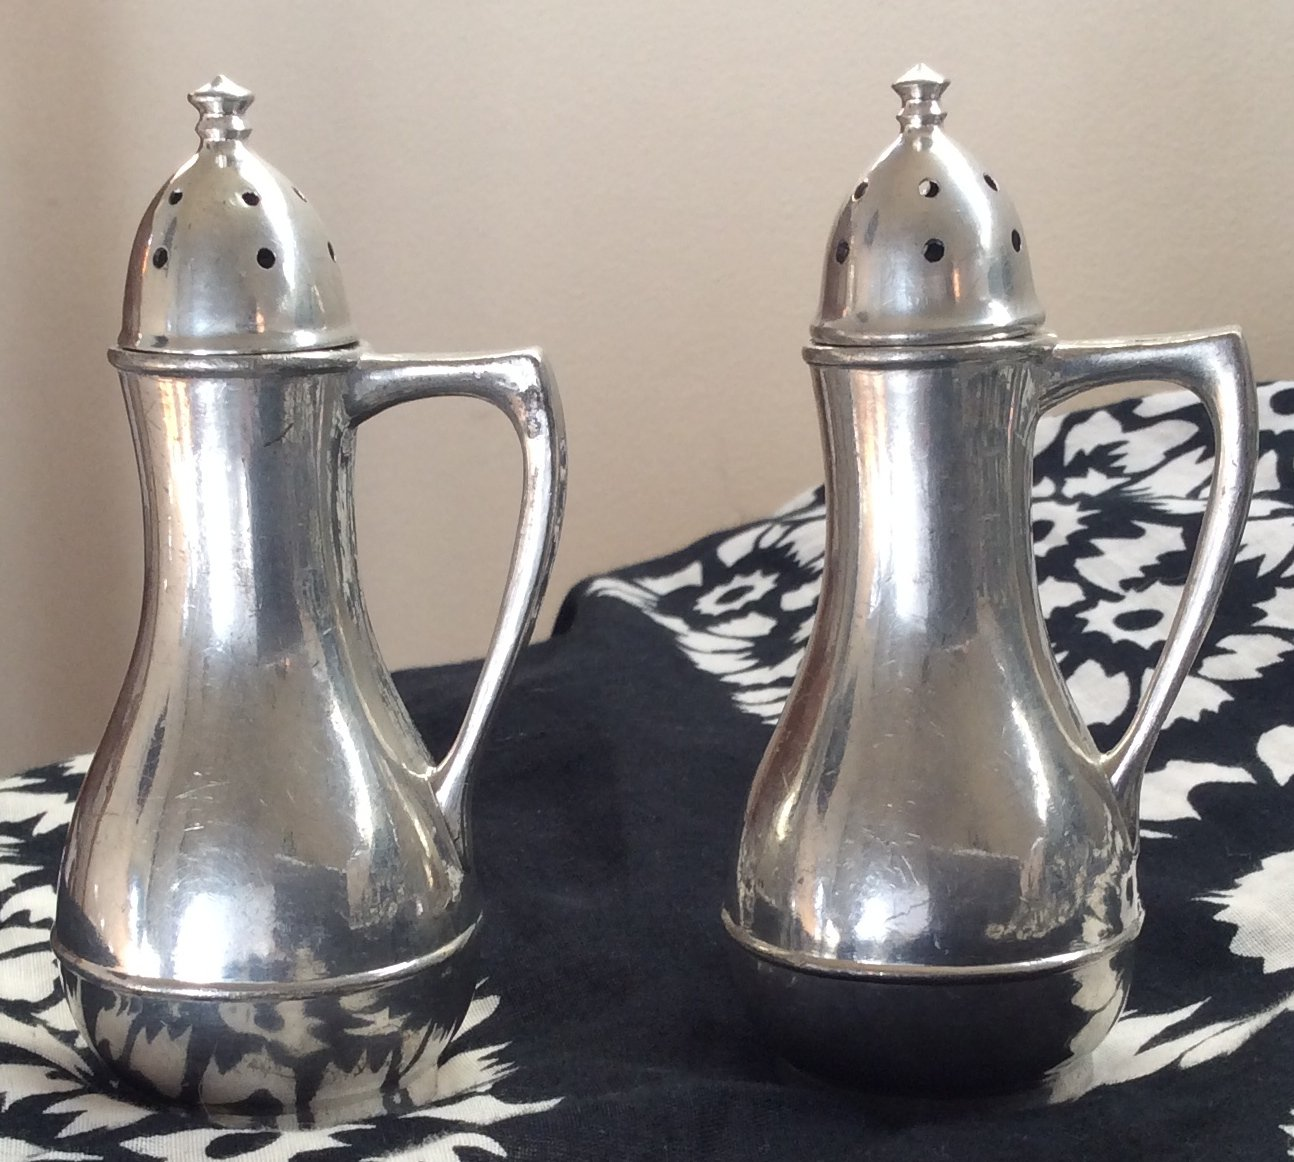 VINTAGE PEWTER Salt and Pepper Shaker Set